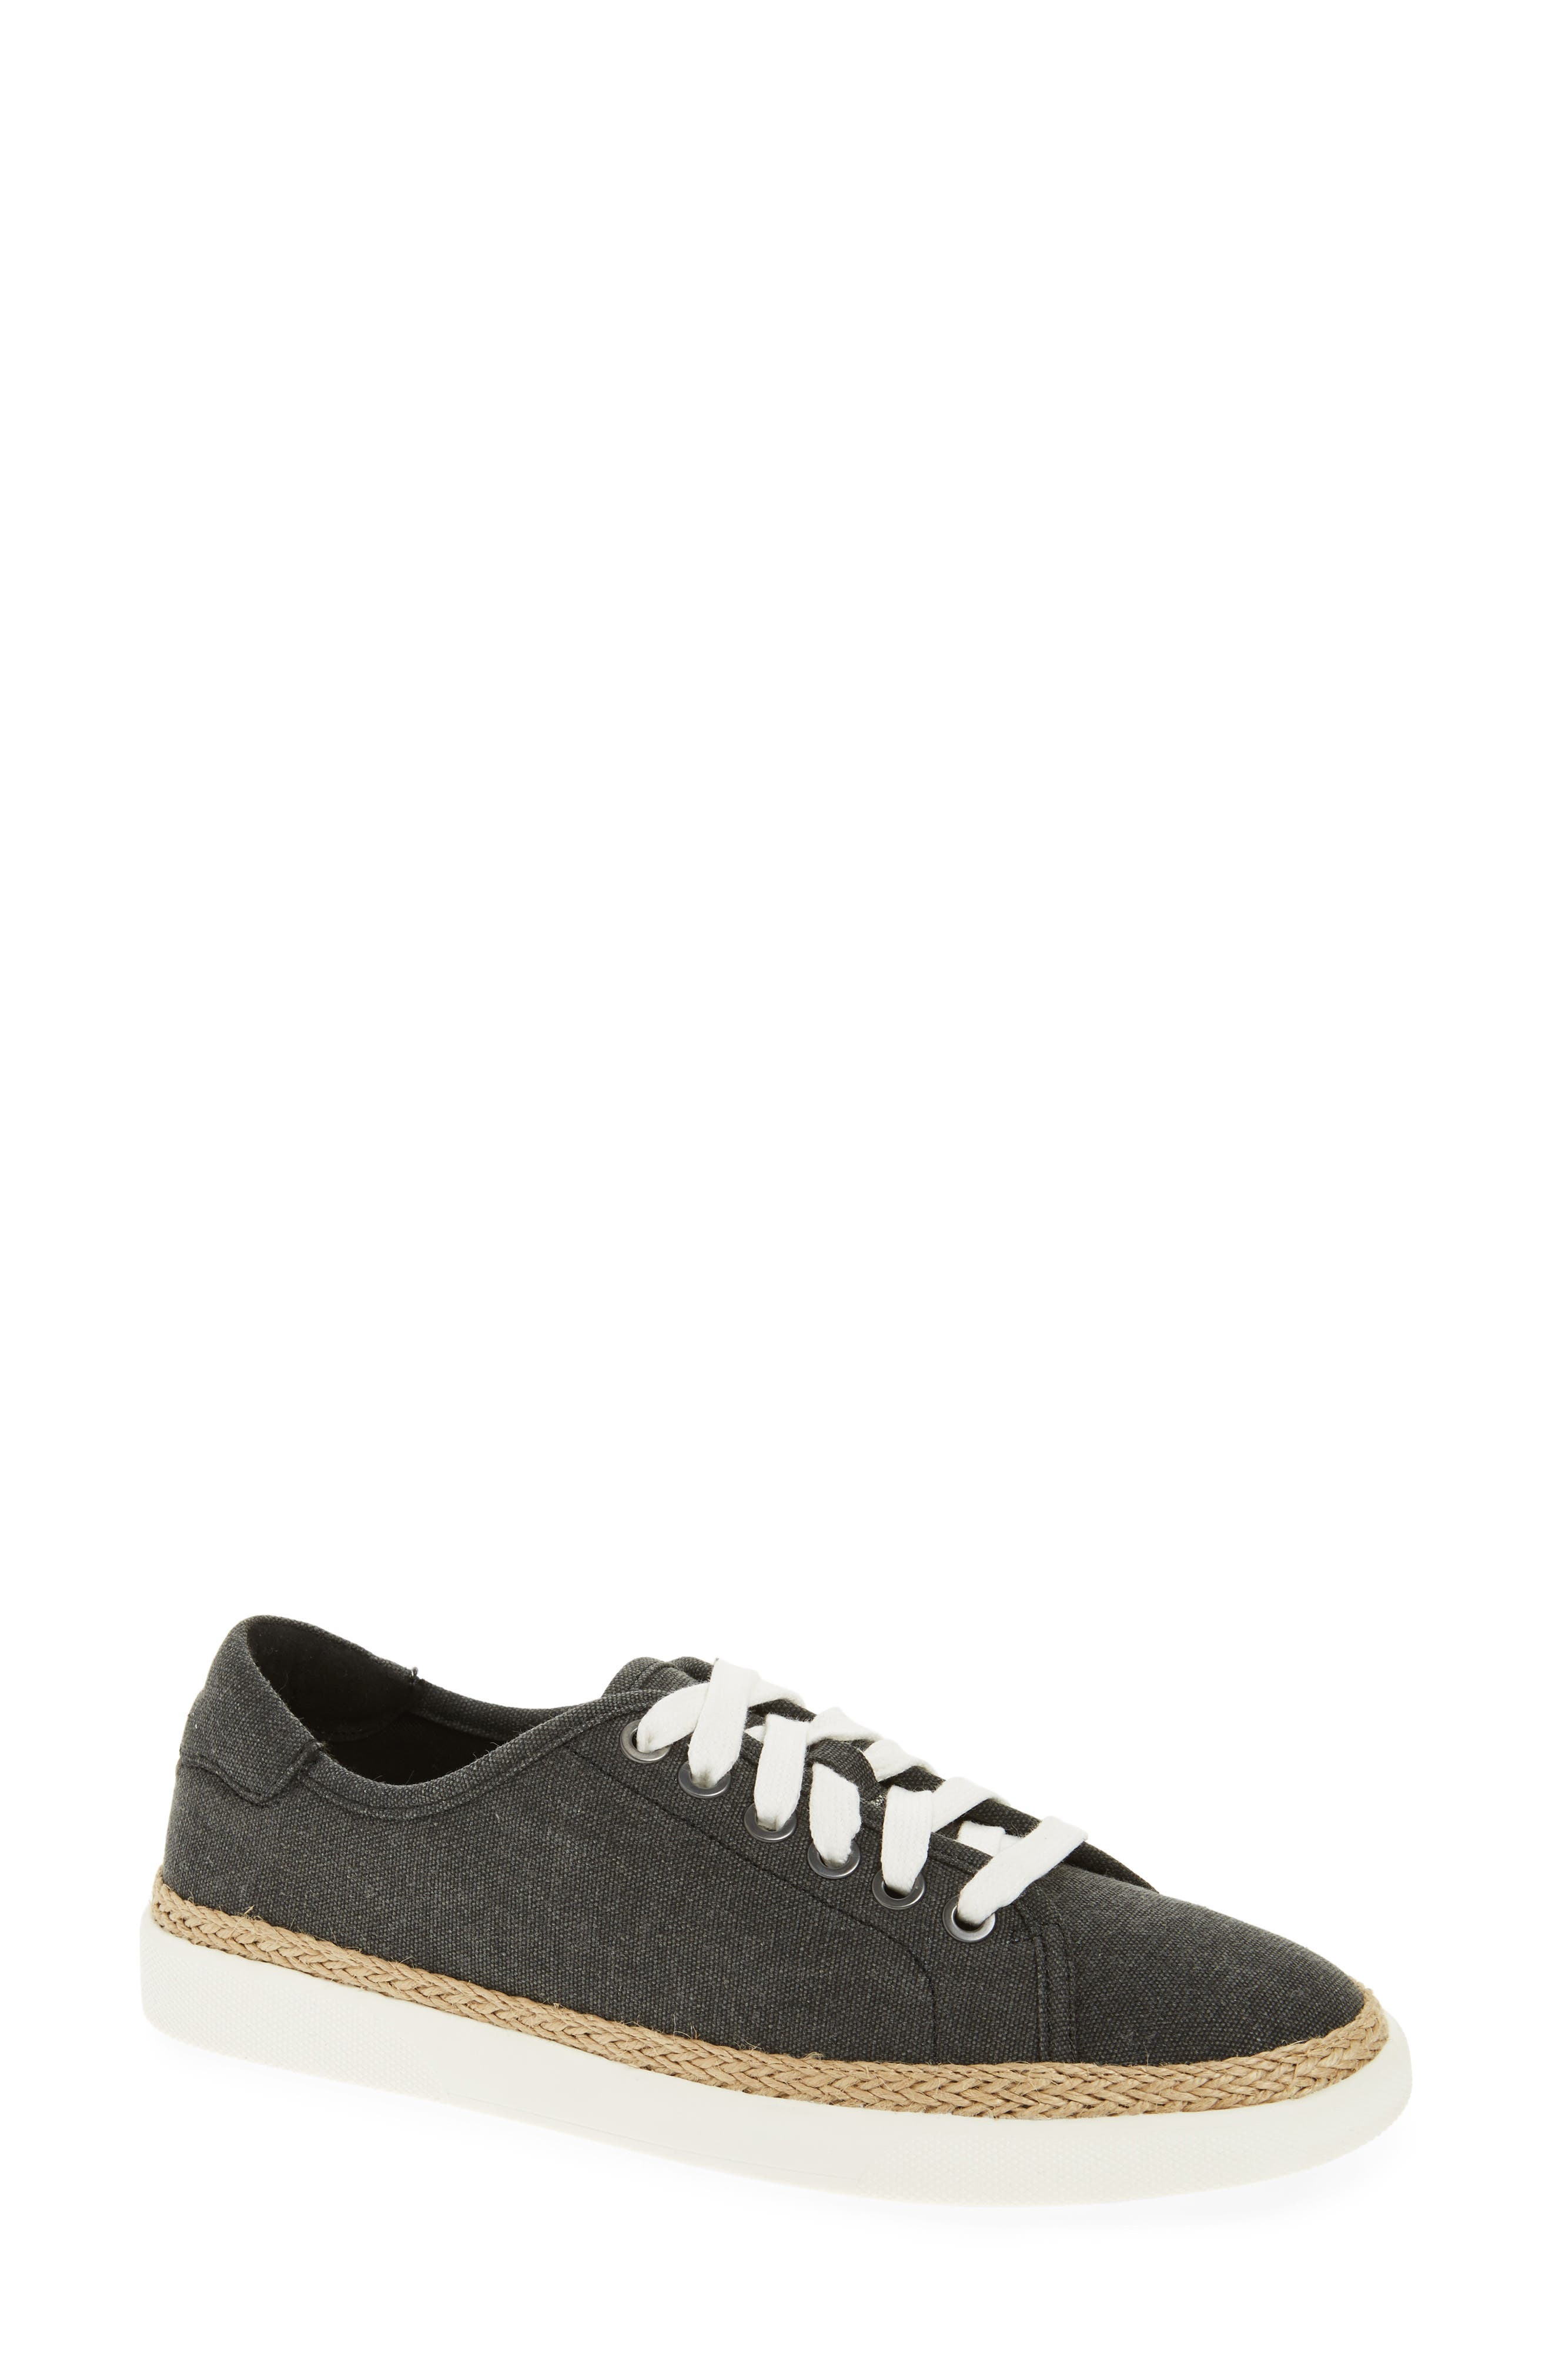 Hattie Sneaker,                         Main,                         color, Black Canvas